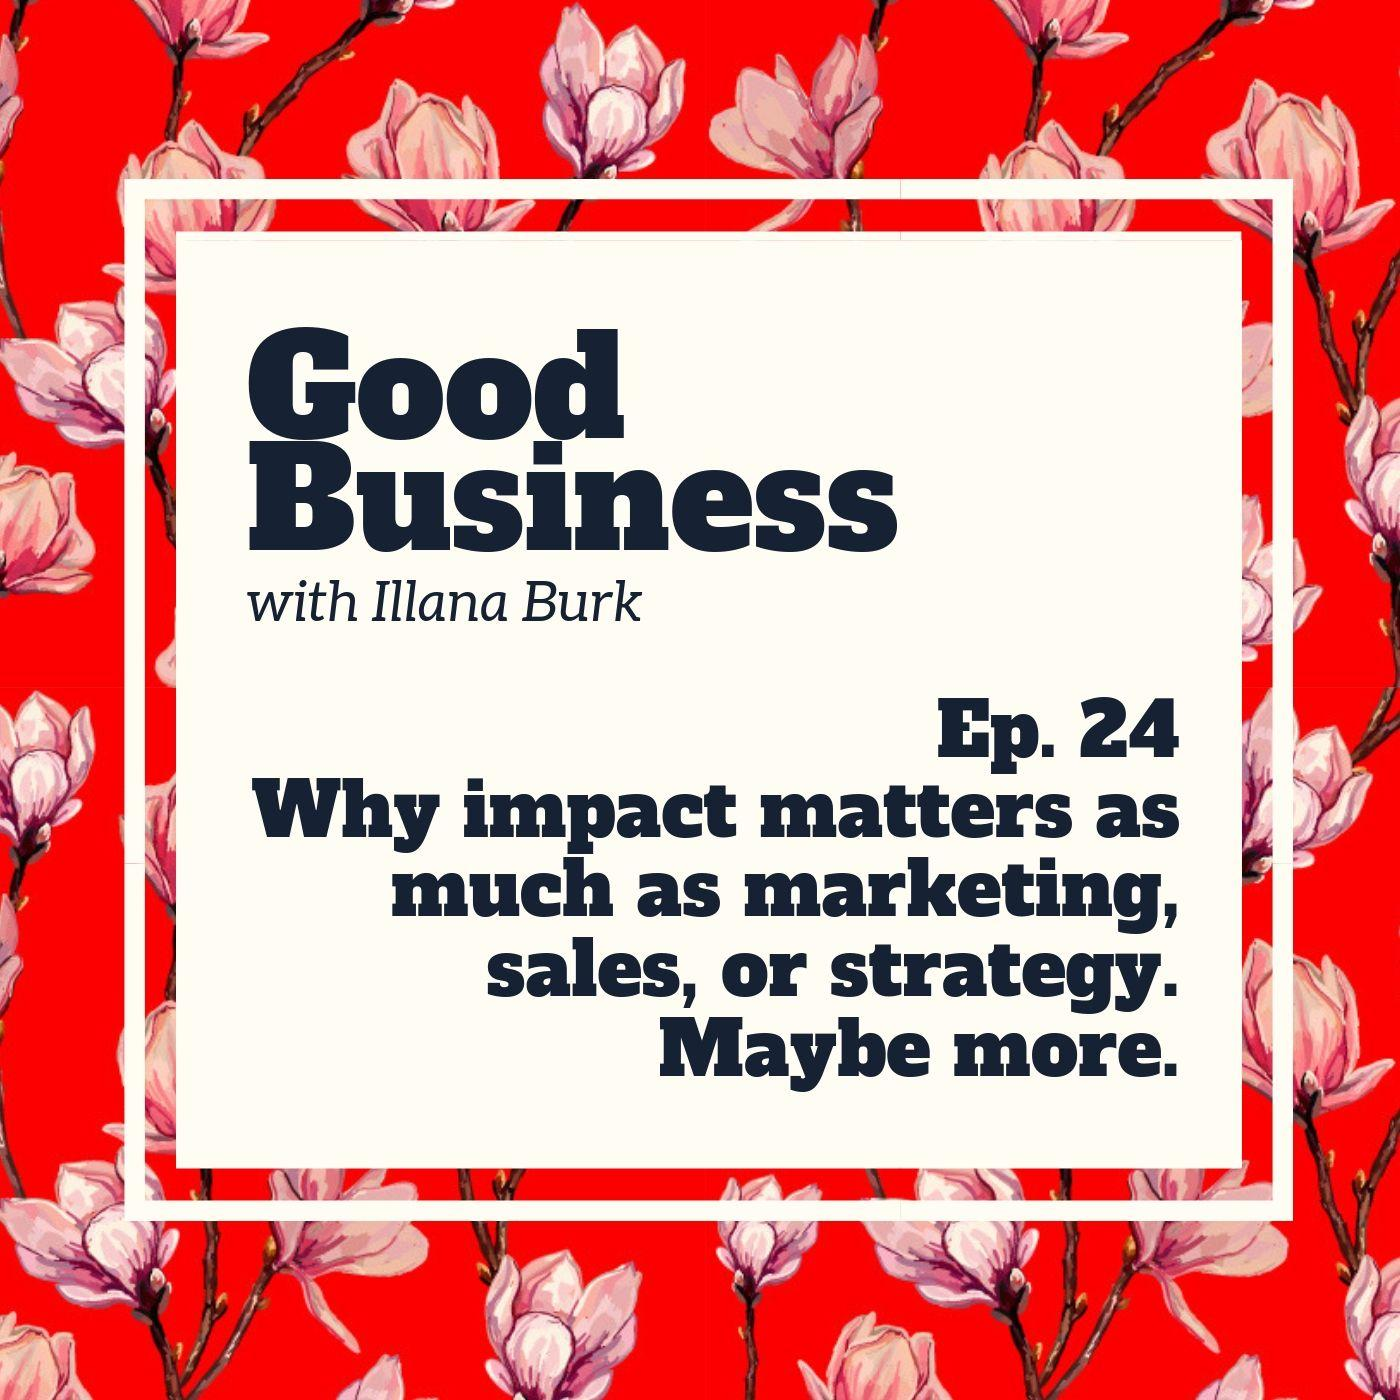 Why impact matters as much as marketing, sales, or strategy. | GB 24